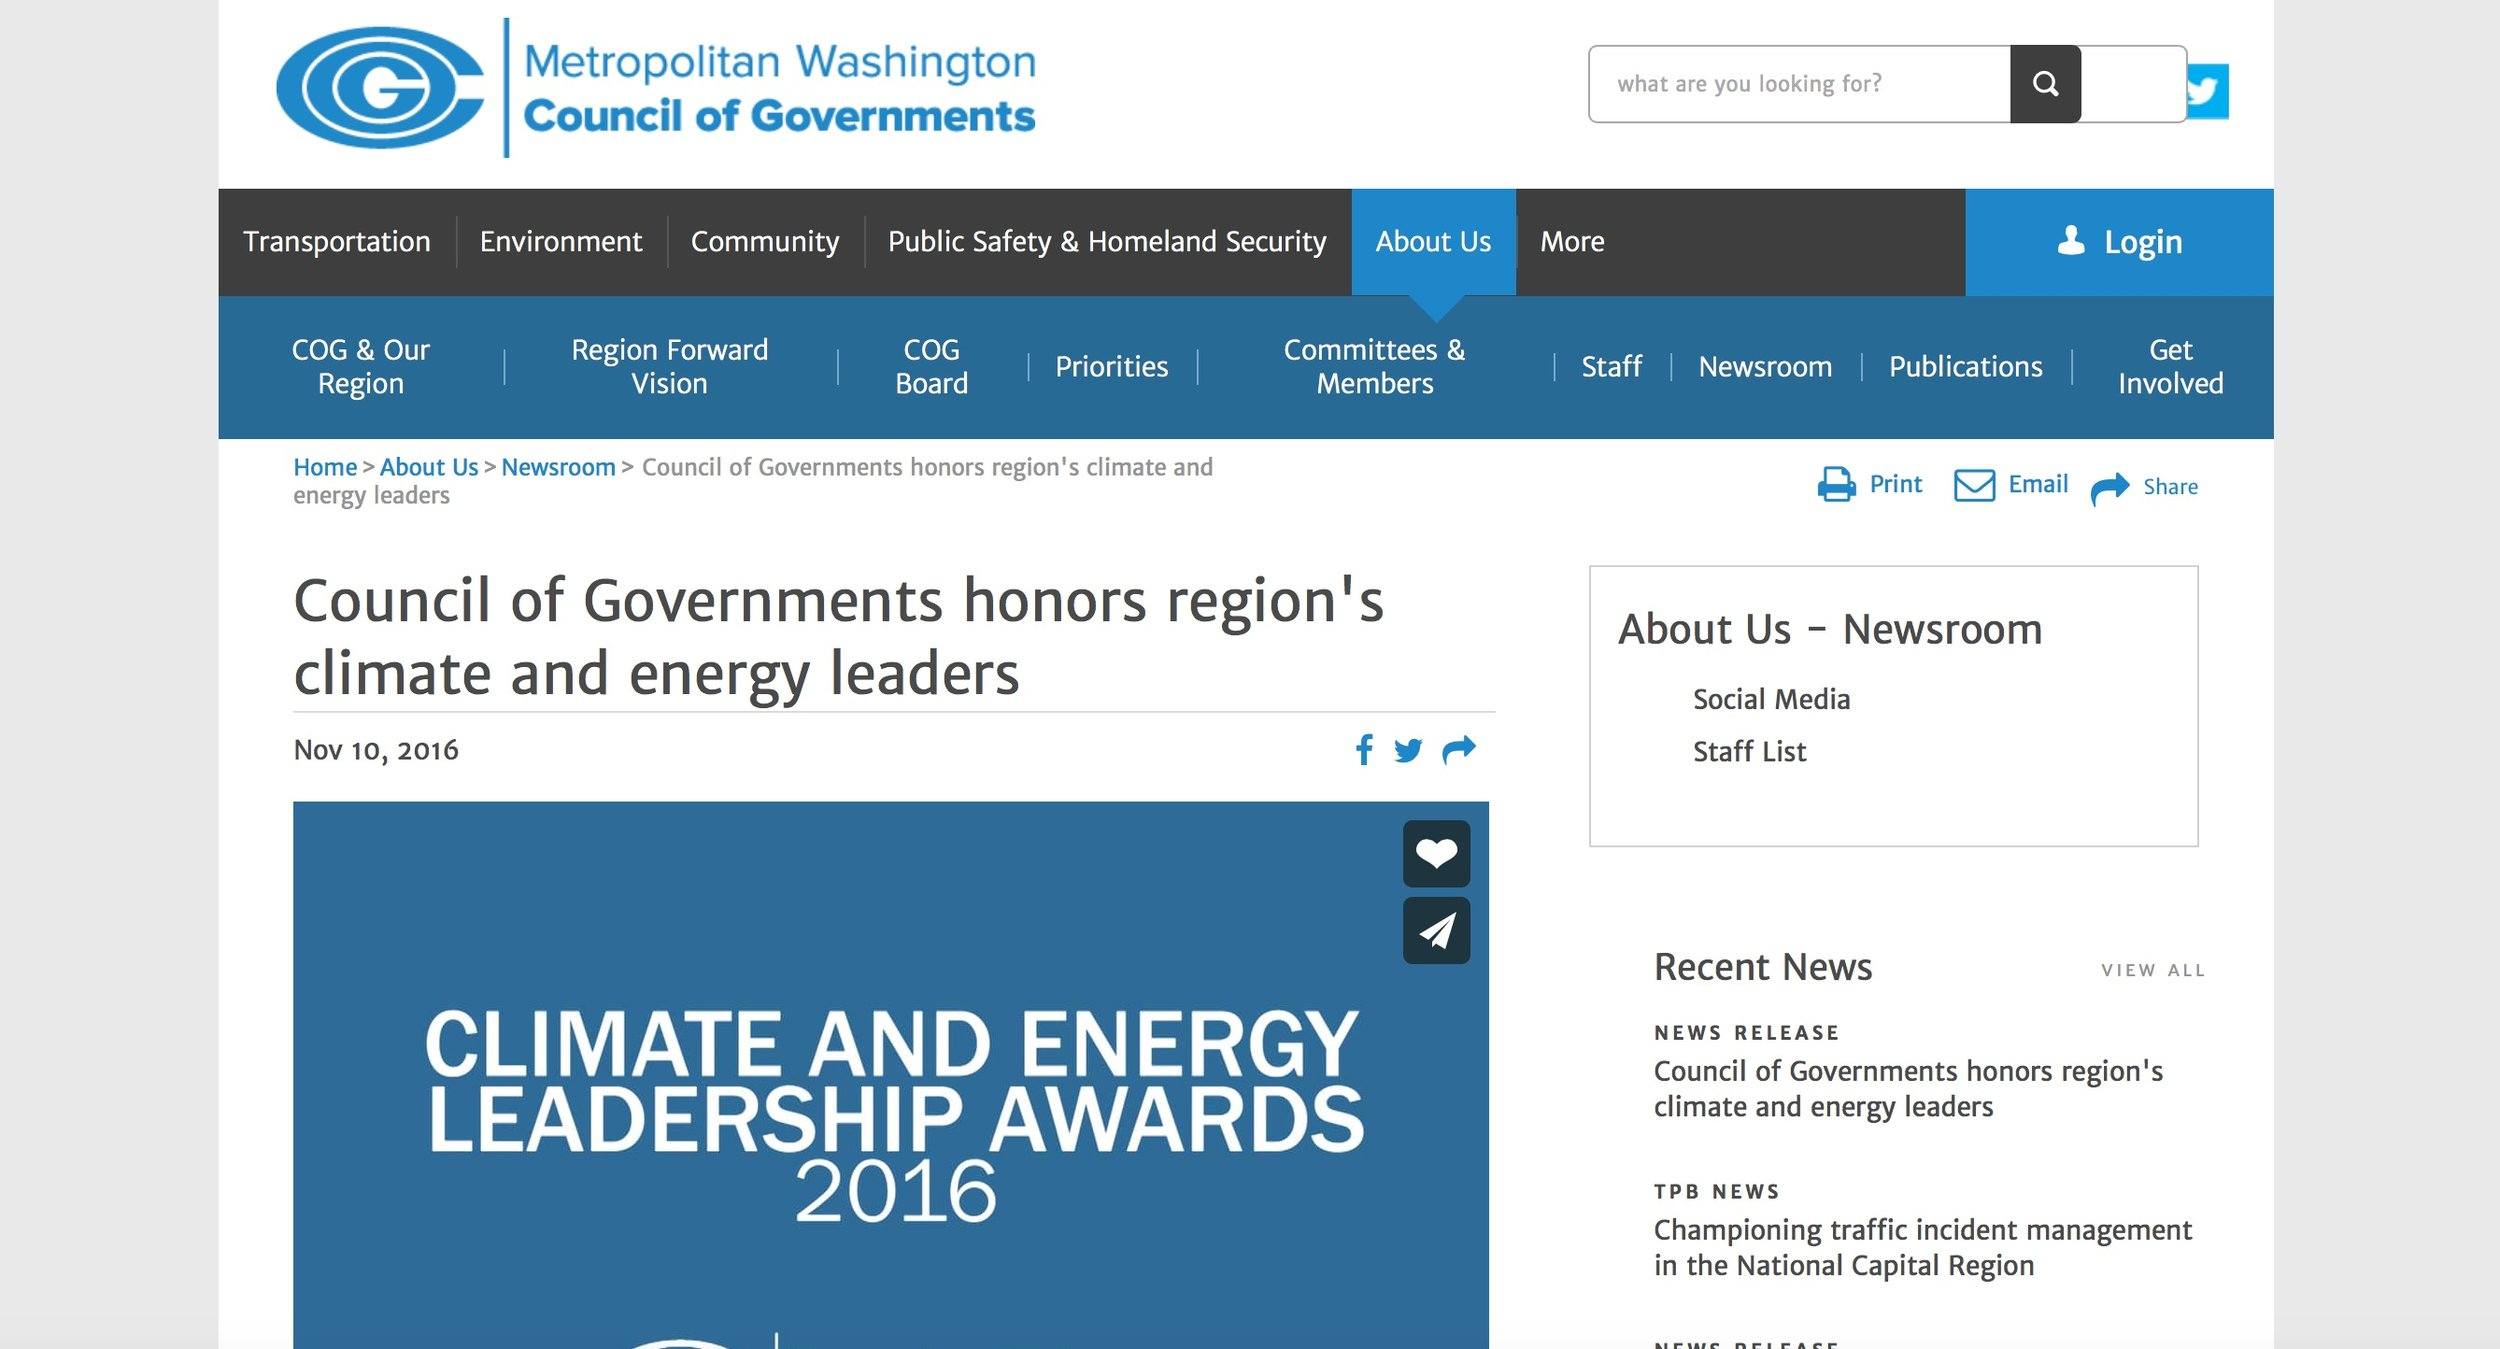 Metropolitan Council of Governments (COG) Climate and Energy Leadership Award - 2016